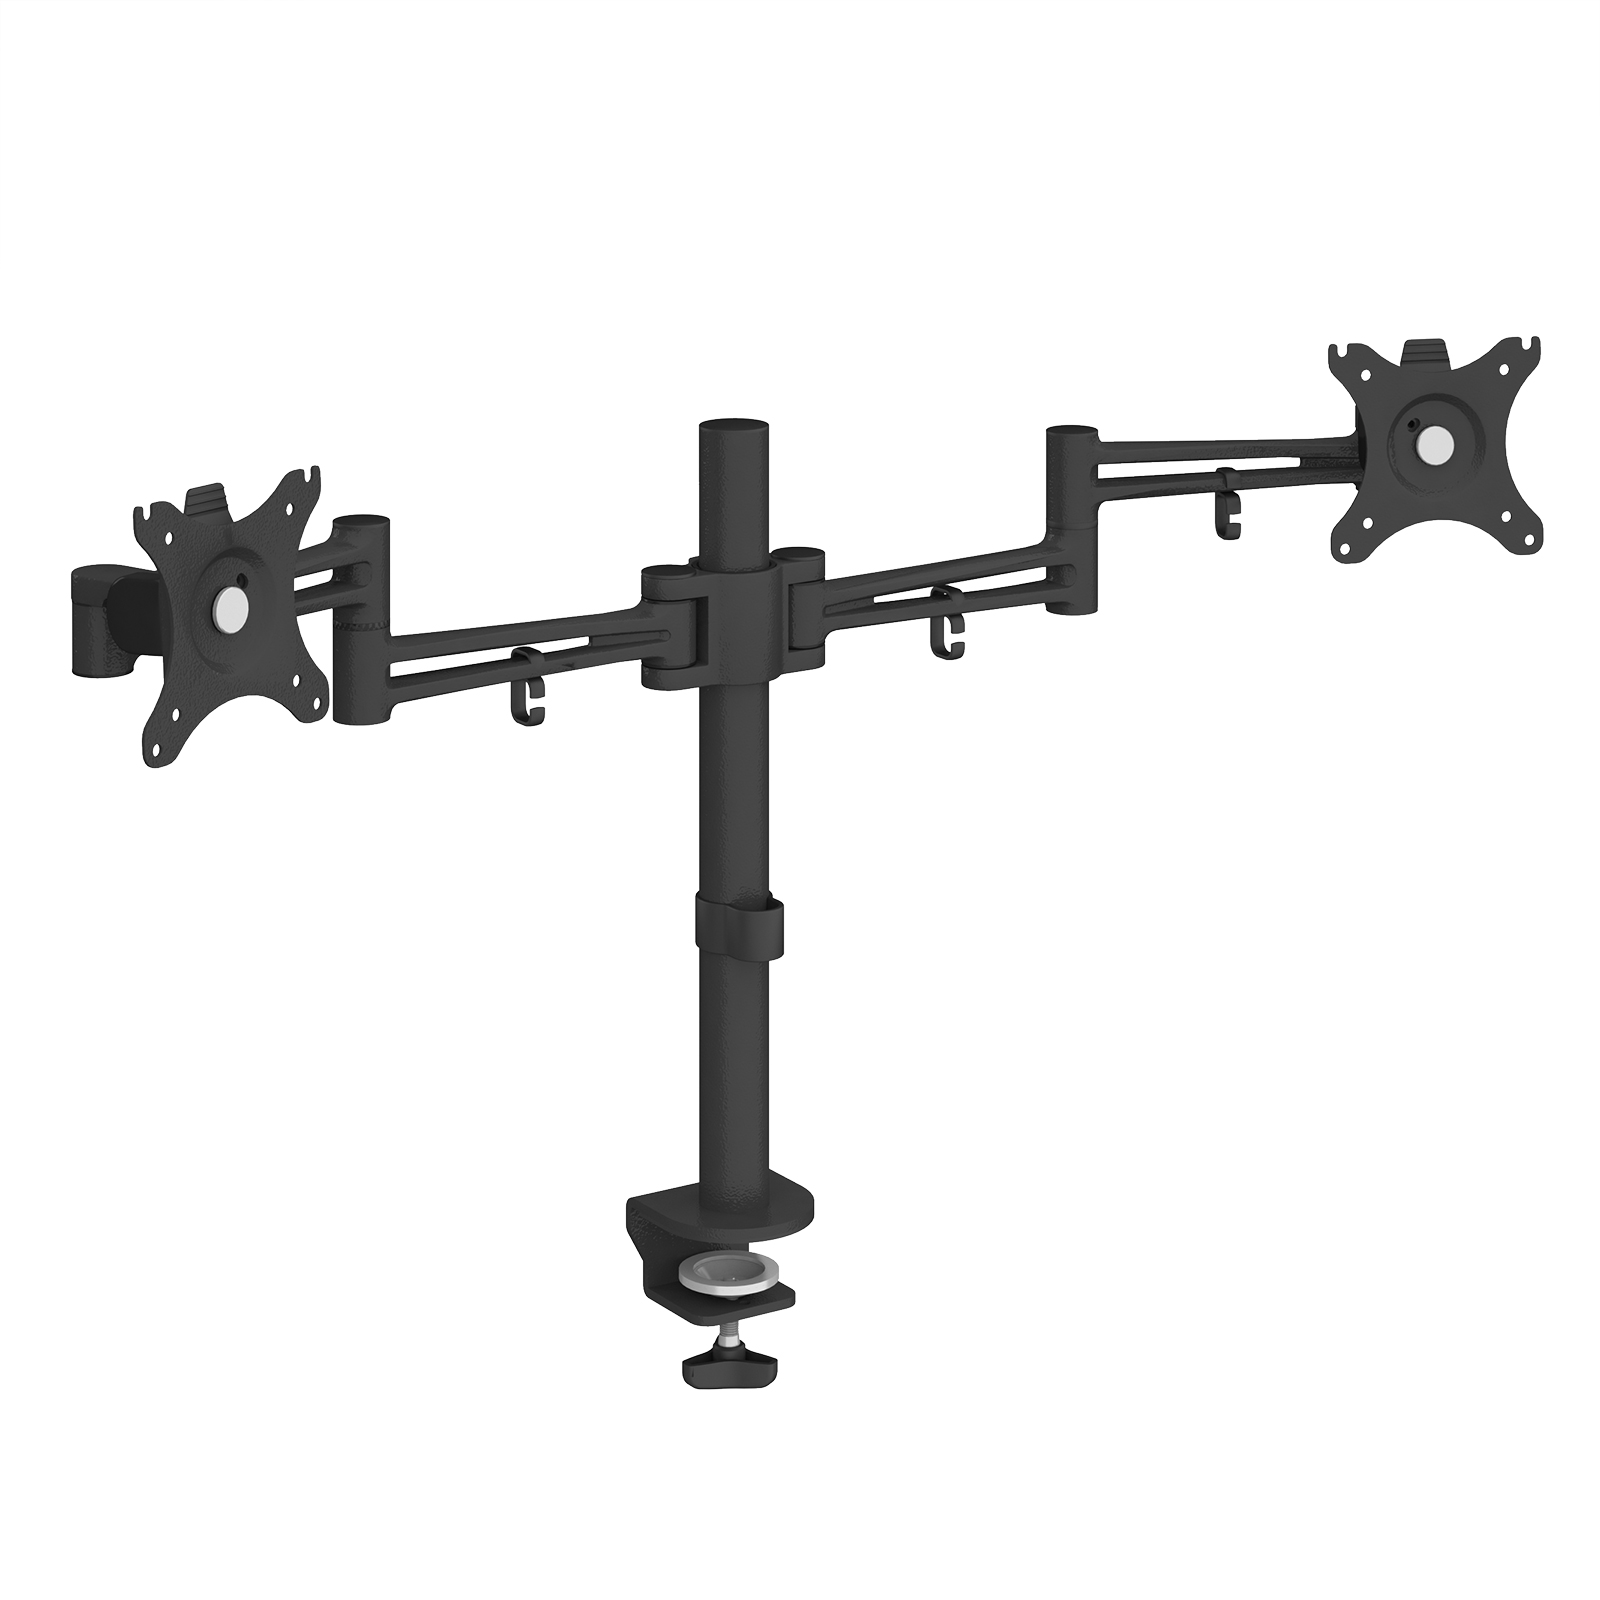 Arms Luna double flat screen monitor arm - black